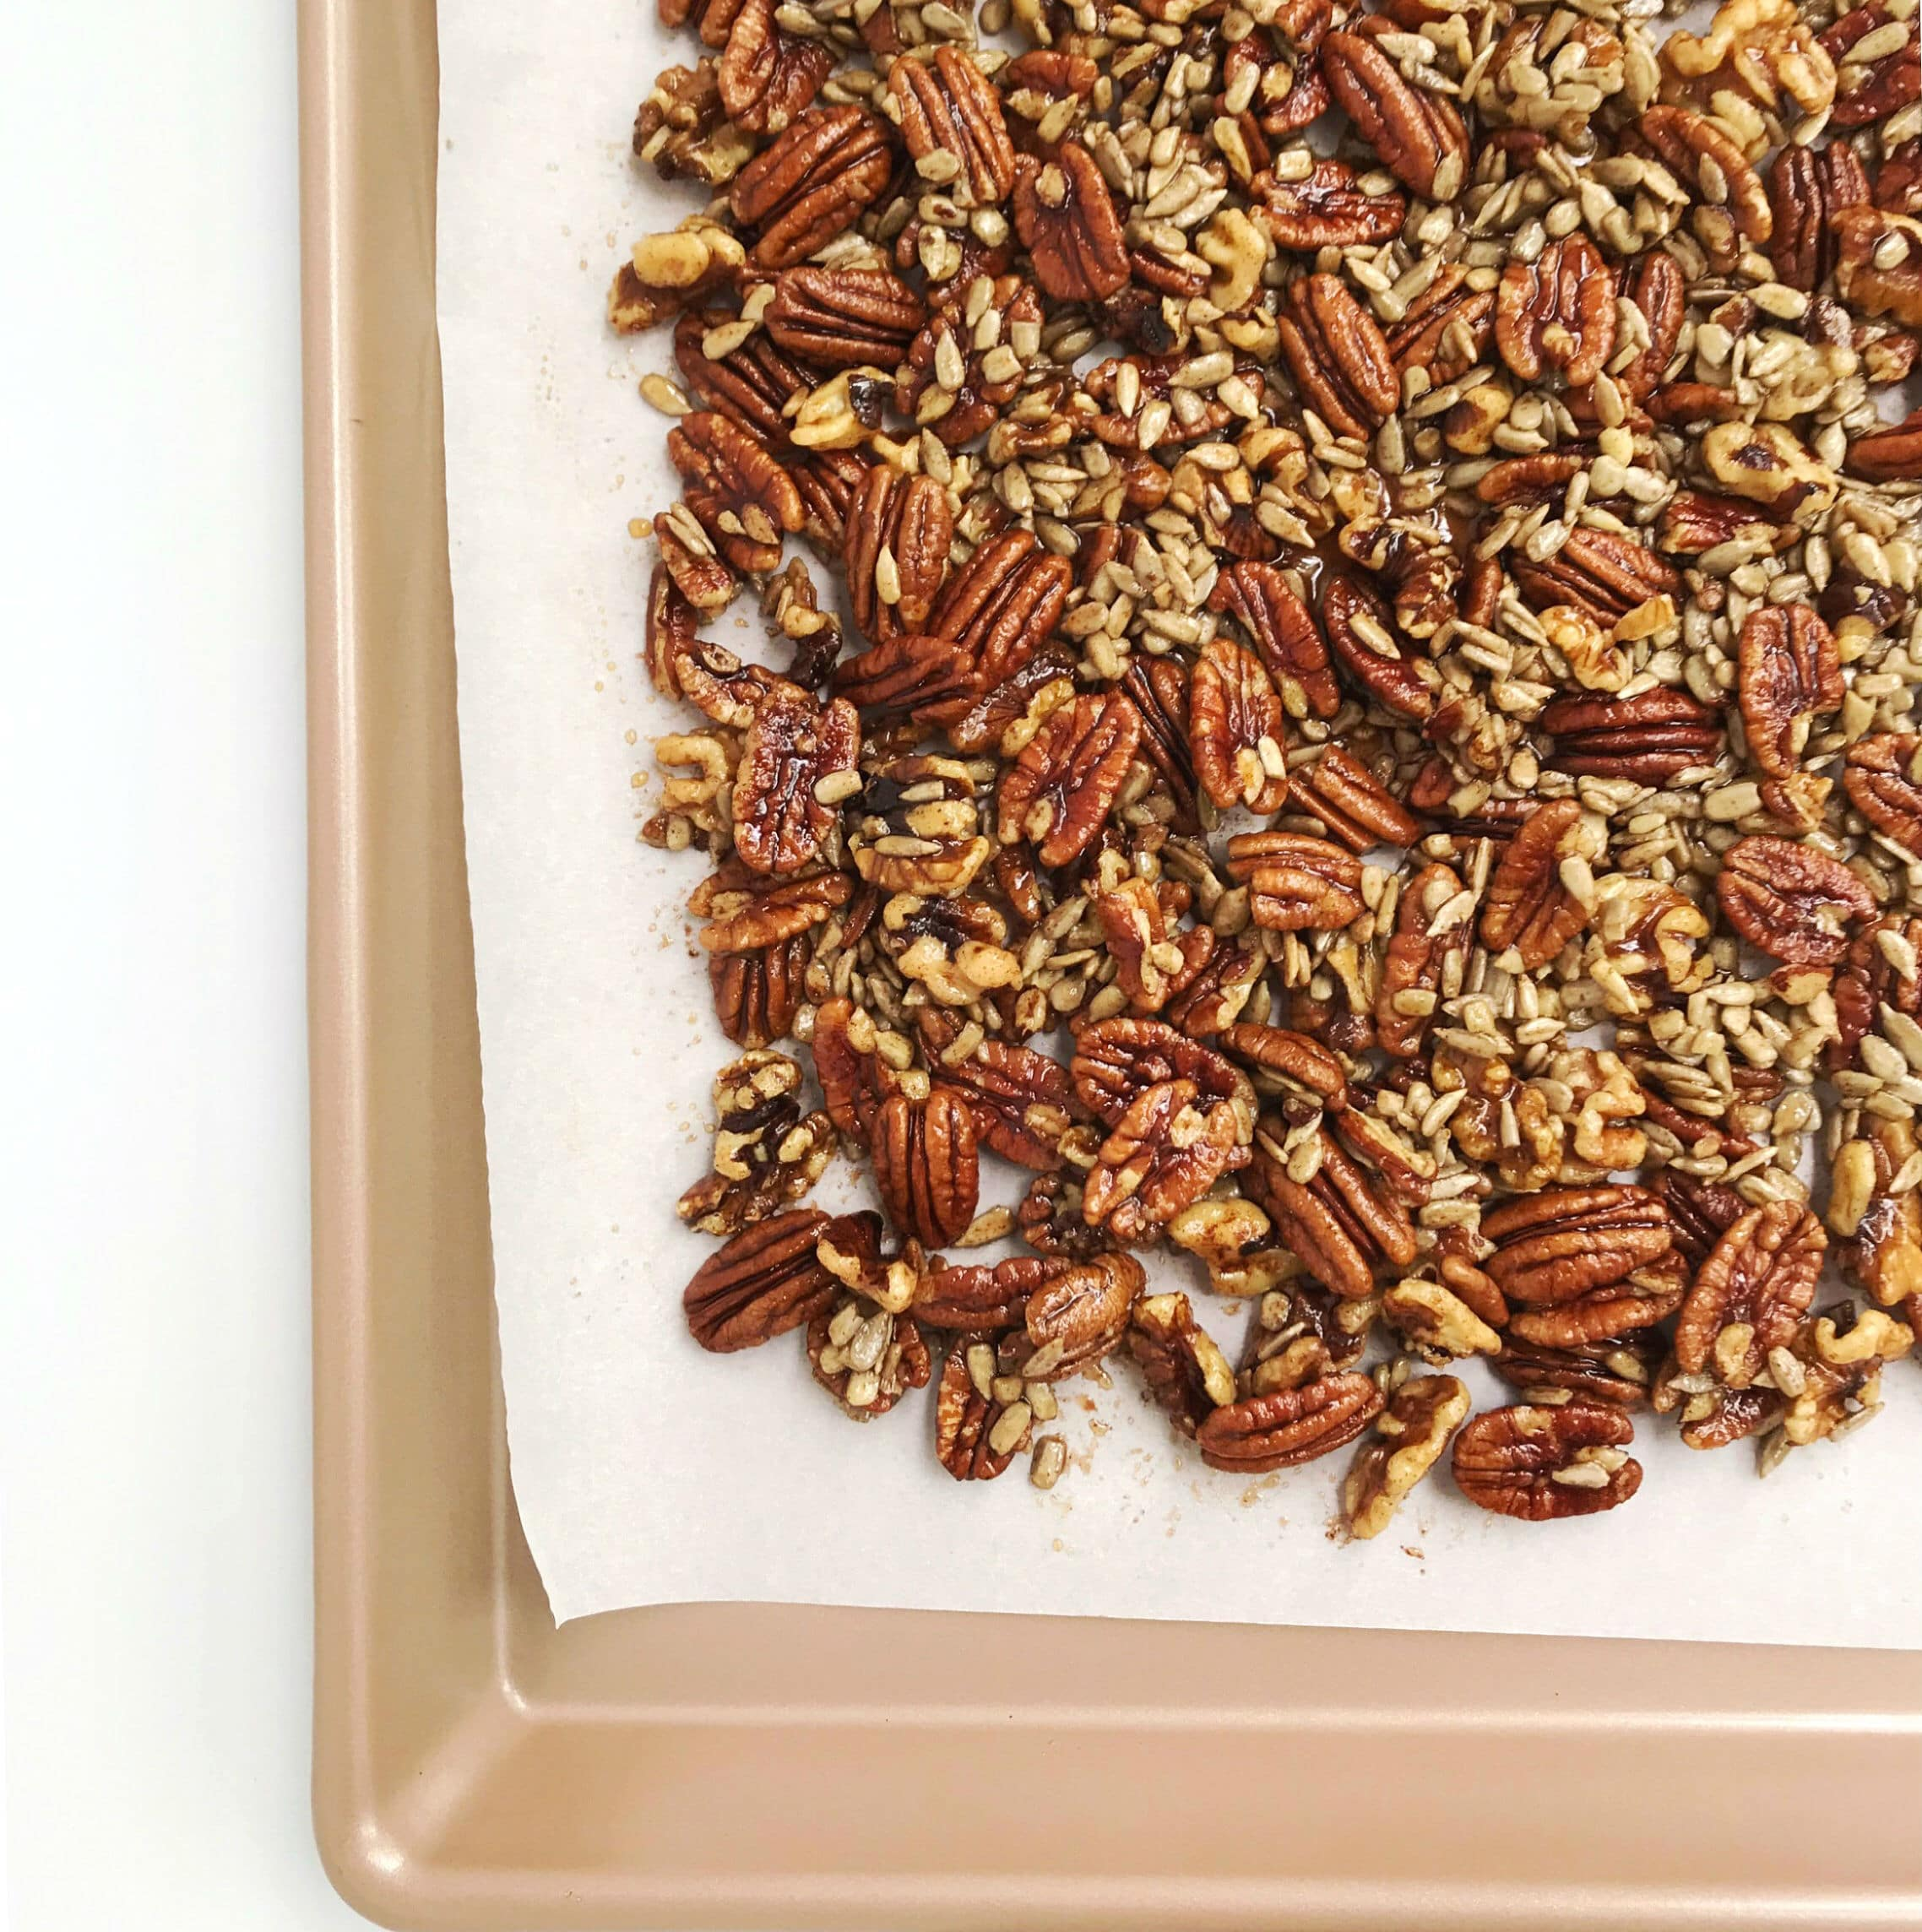 A baking sheet with grain-free cinnamon apple granola on it.